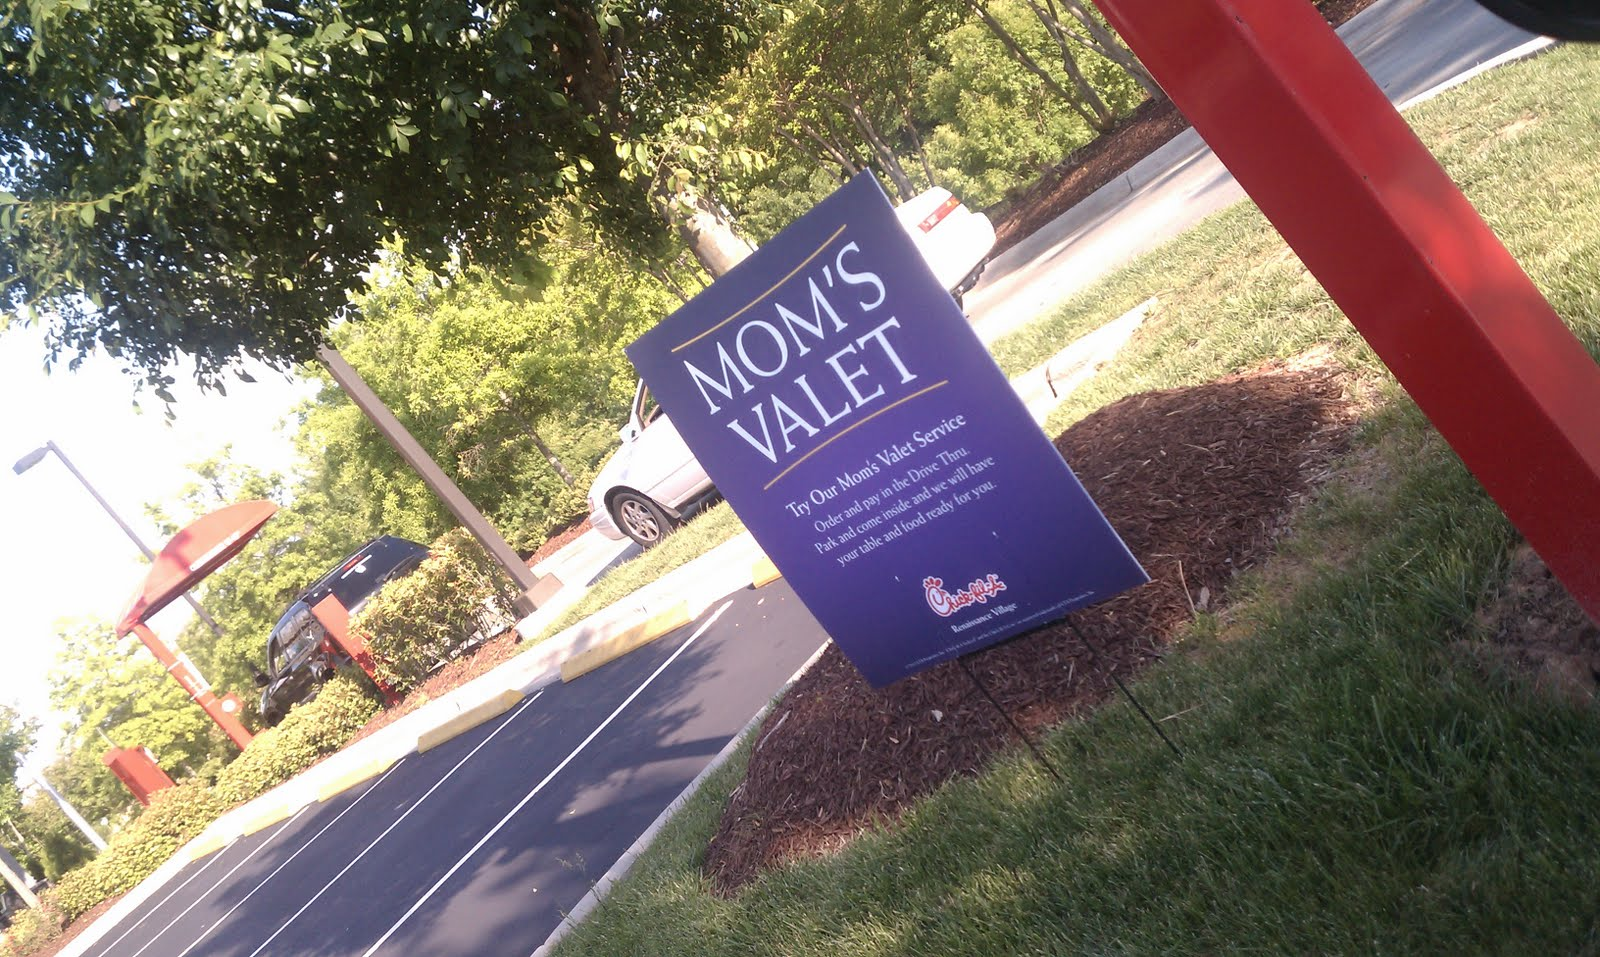 Chick Fil A Mom Valet A Guide For Parents In The Triangle Region